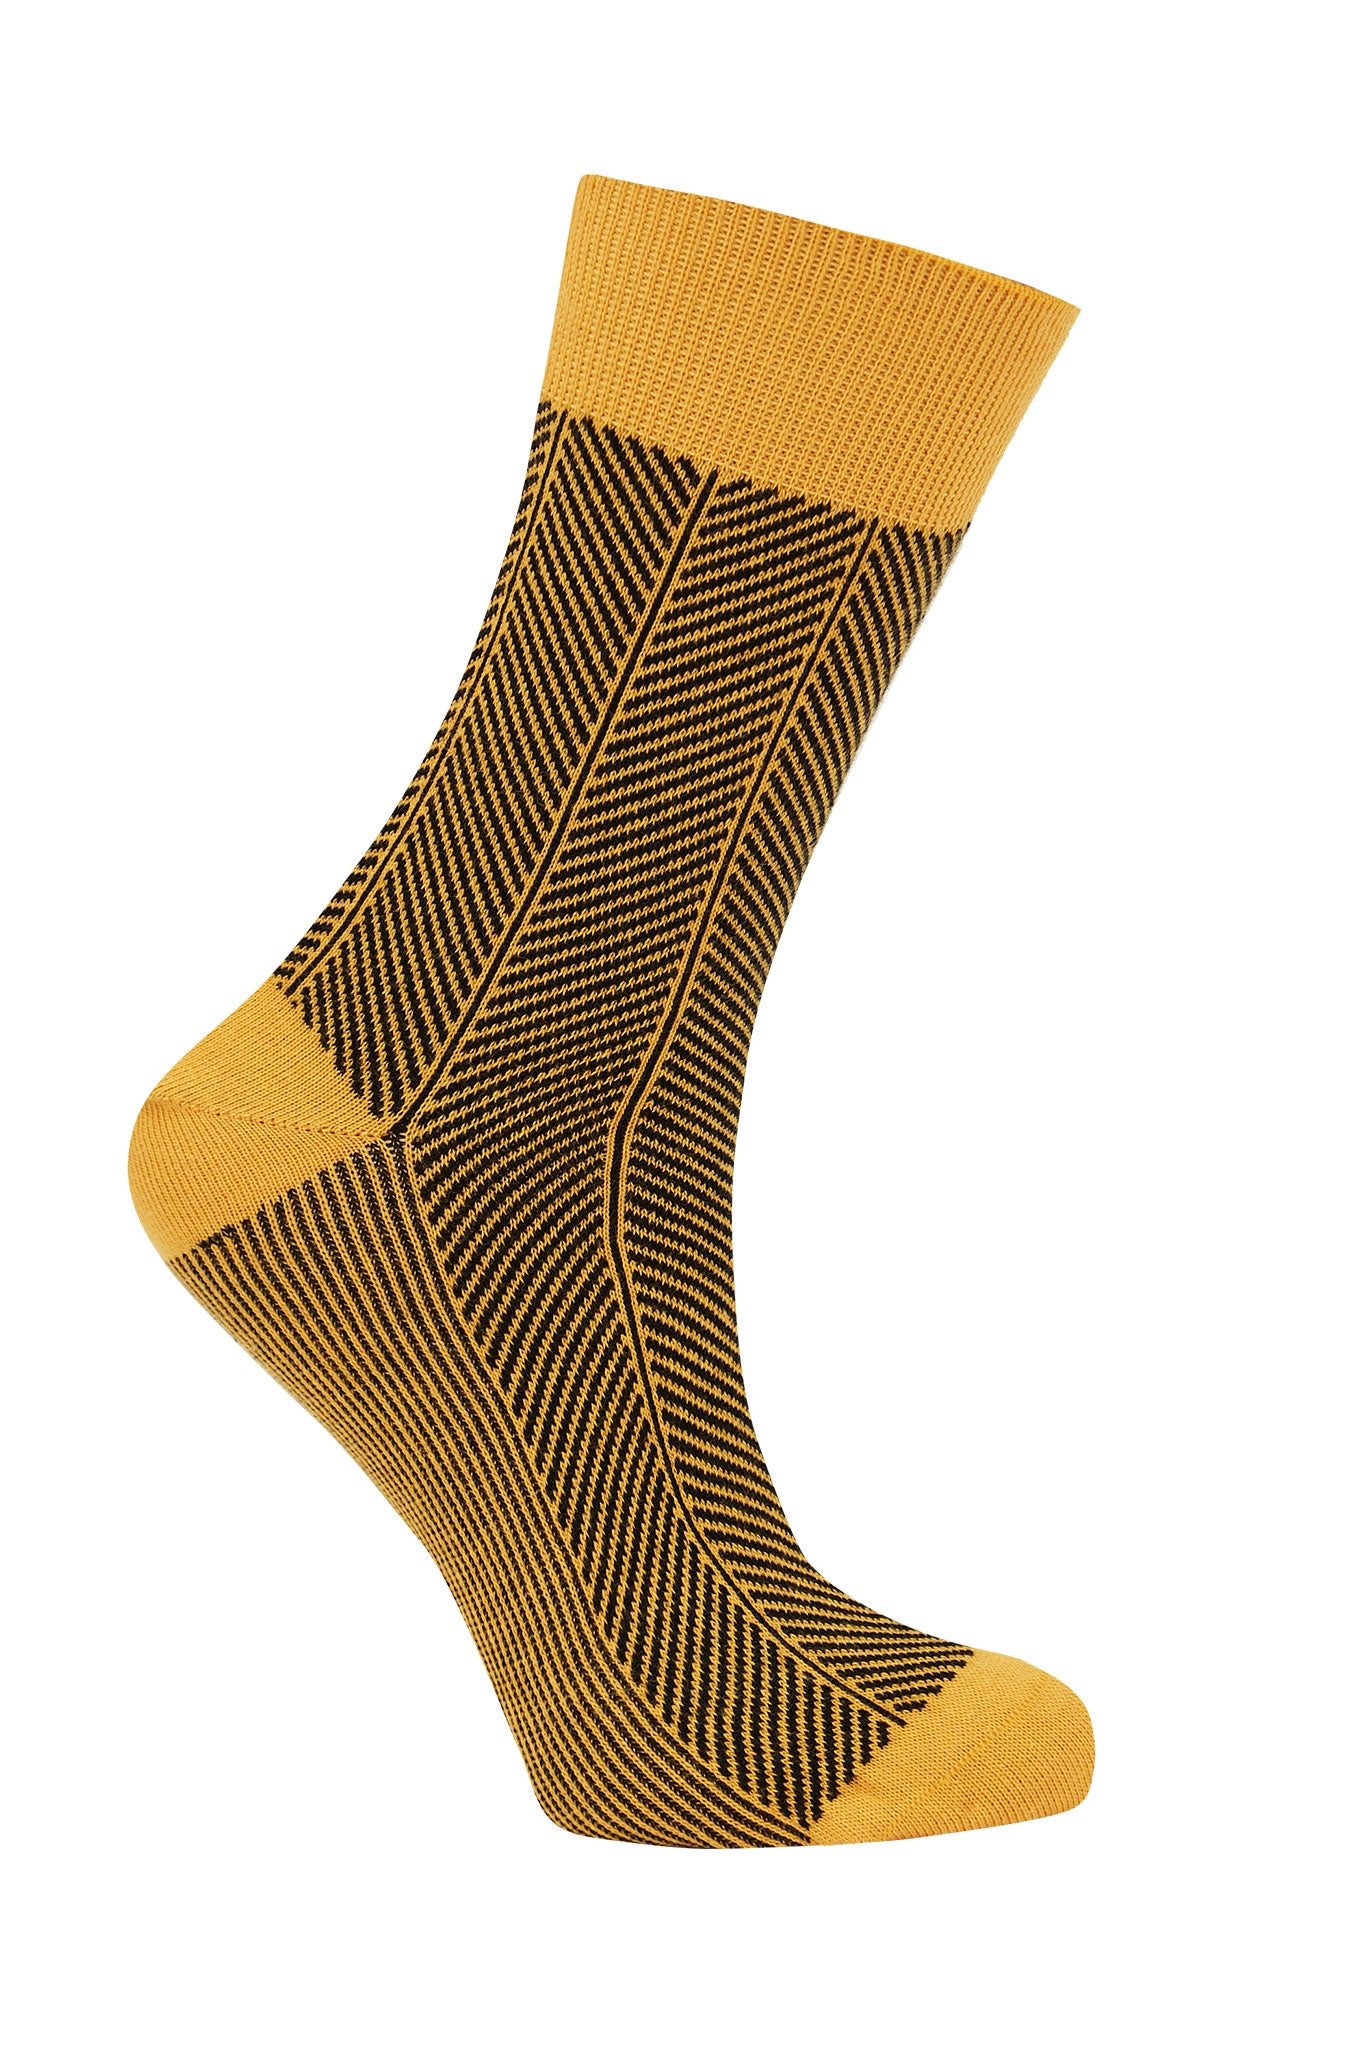 HERRINGBONE Gold - GOTS Organic Cotton Socks